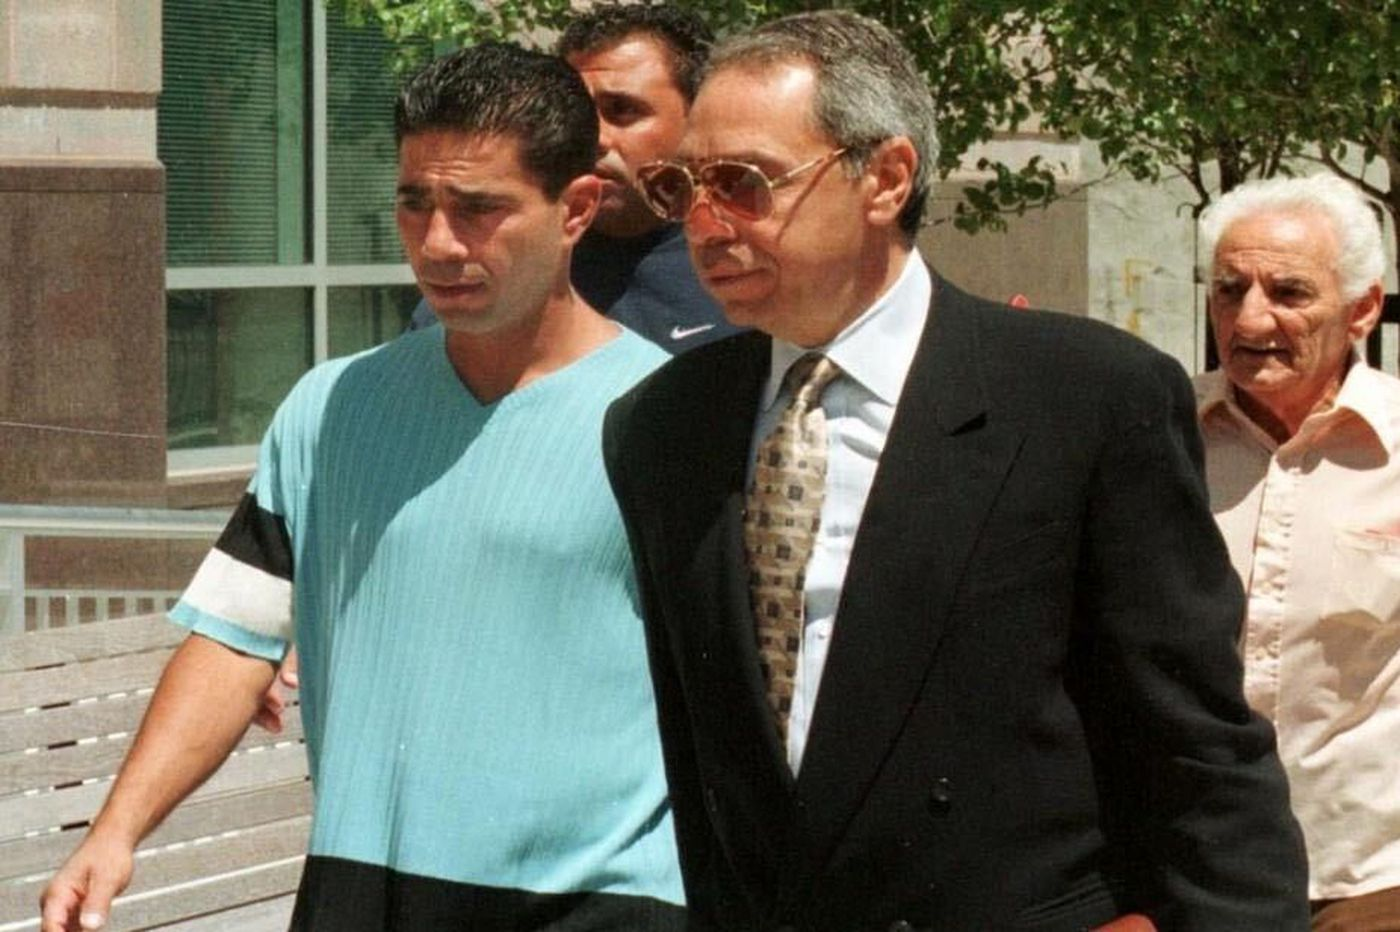 Joseph Santaguida, 81, lawyer and defender of reputed Philly mob associates, dies from the coronavirus